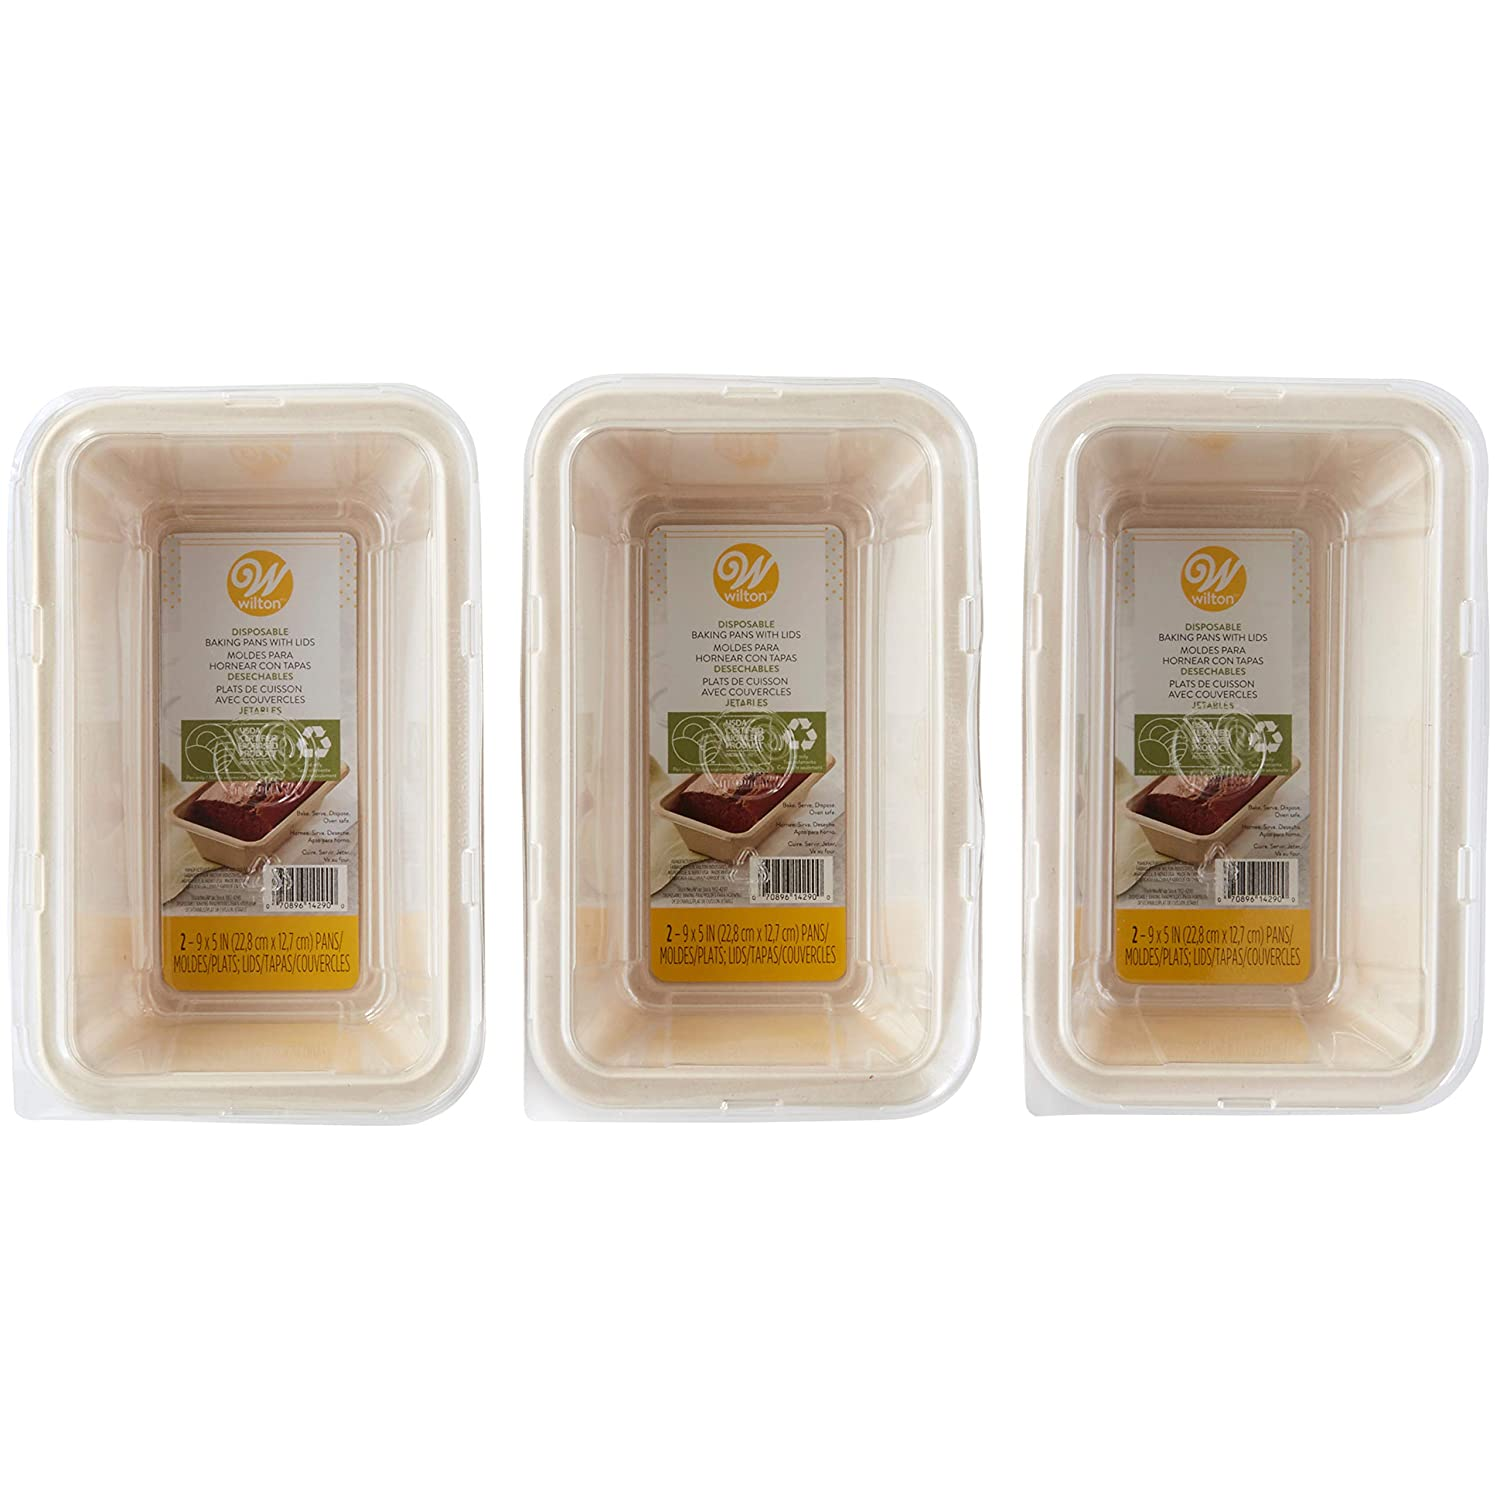 Amazon.com: Wilton Disposable Loaf Baking Pans With Lids, 6-Count: Kitchen & Dining